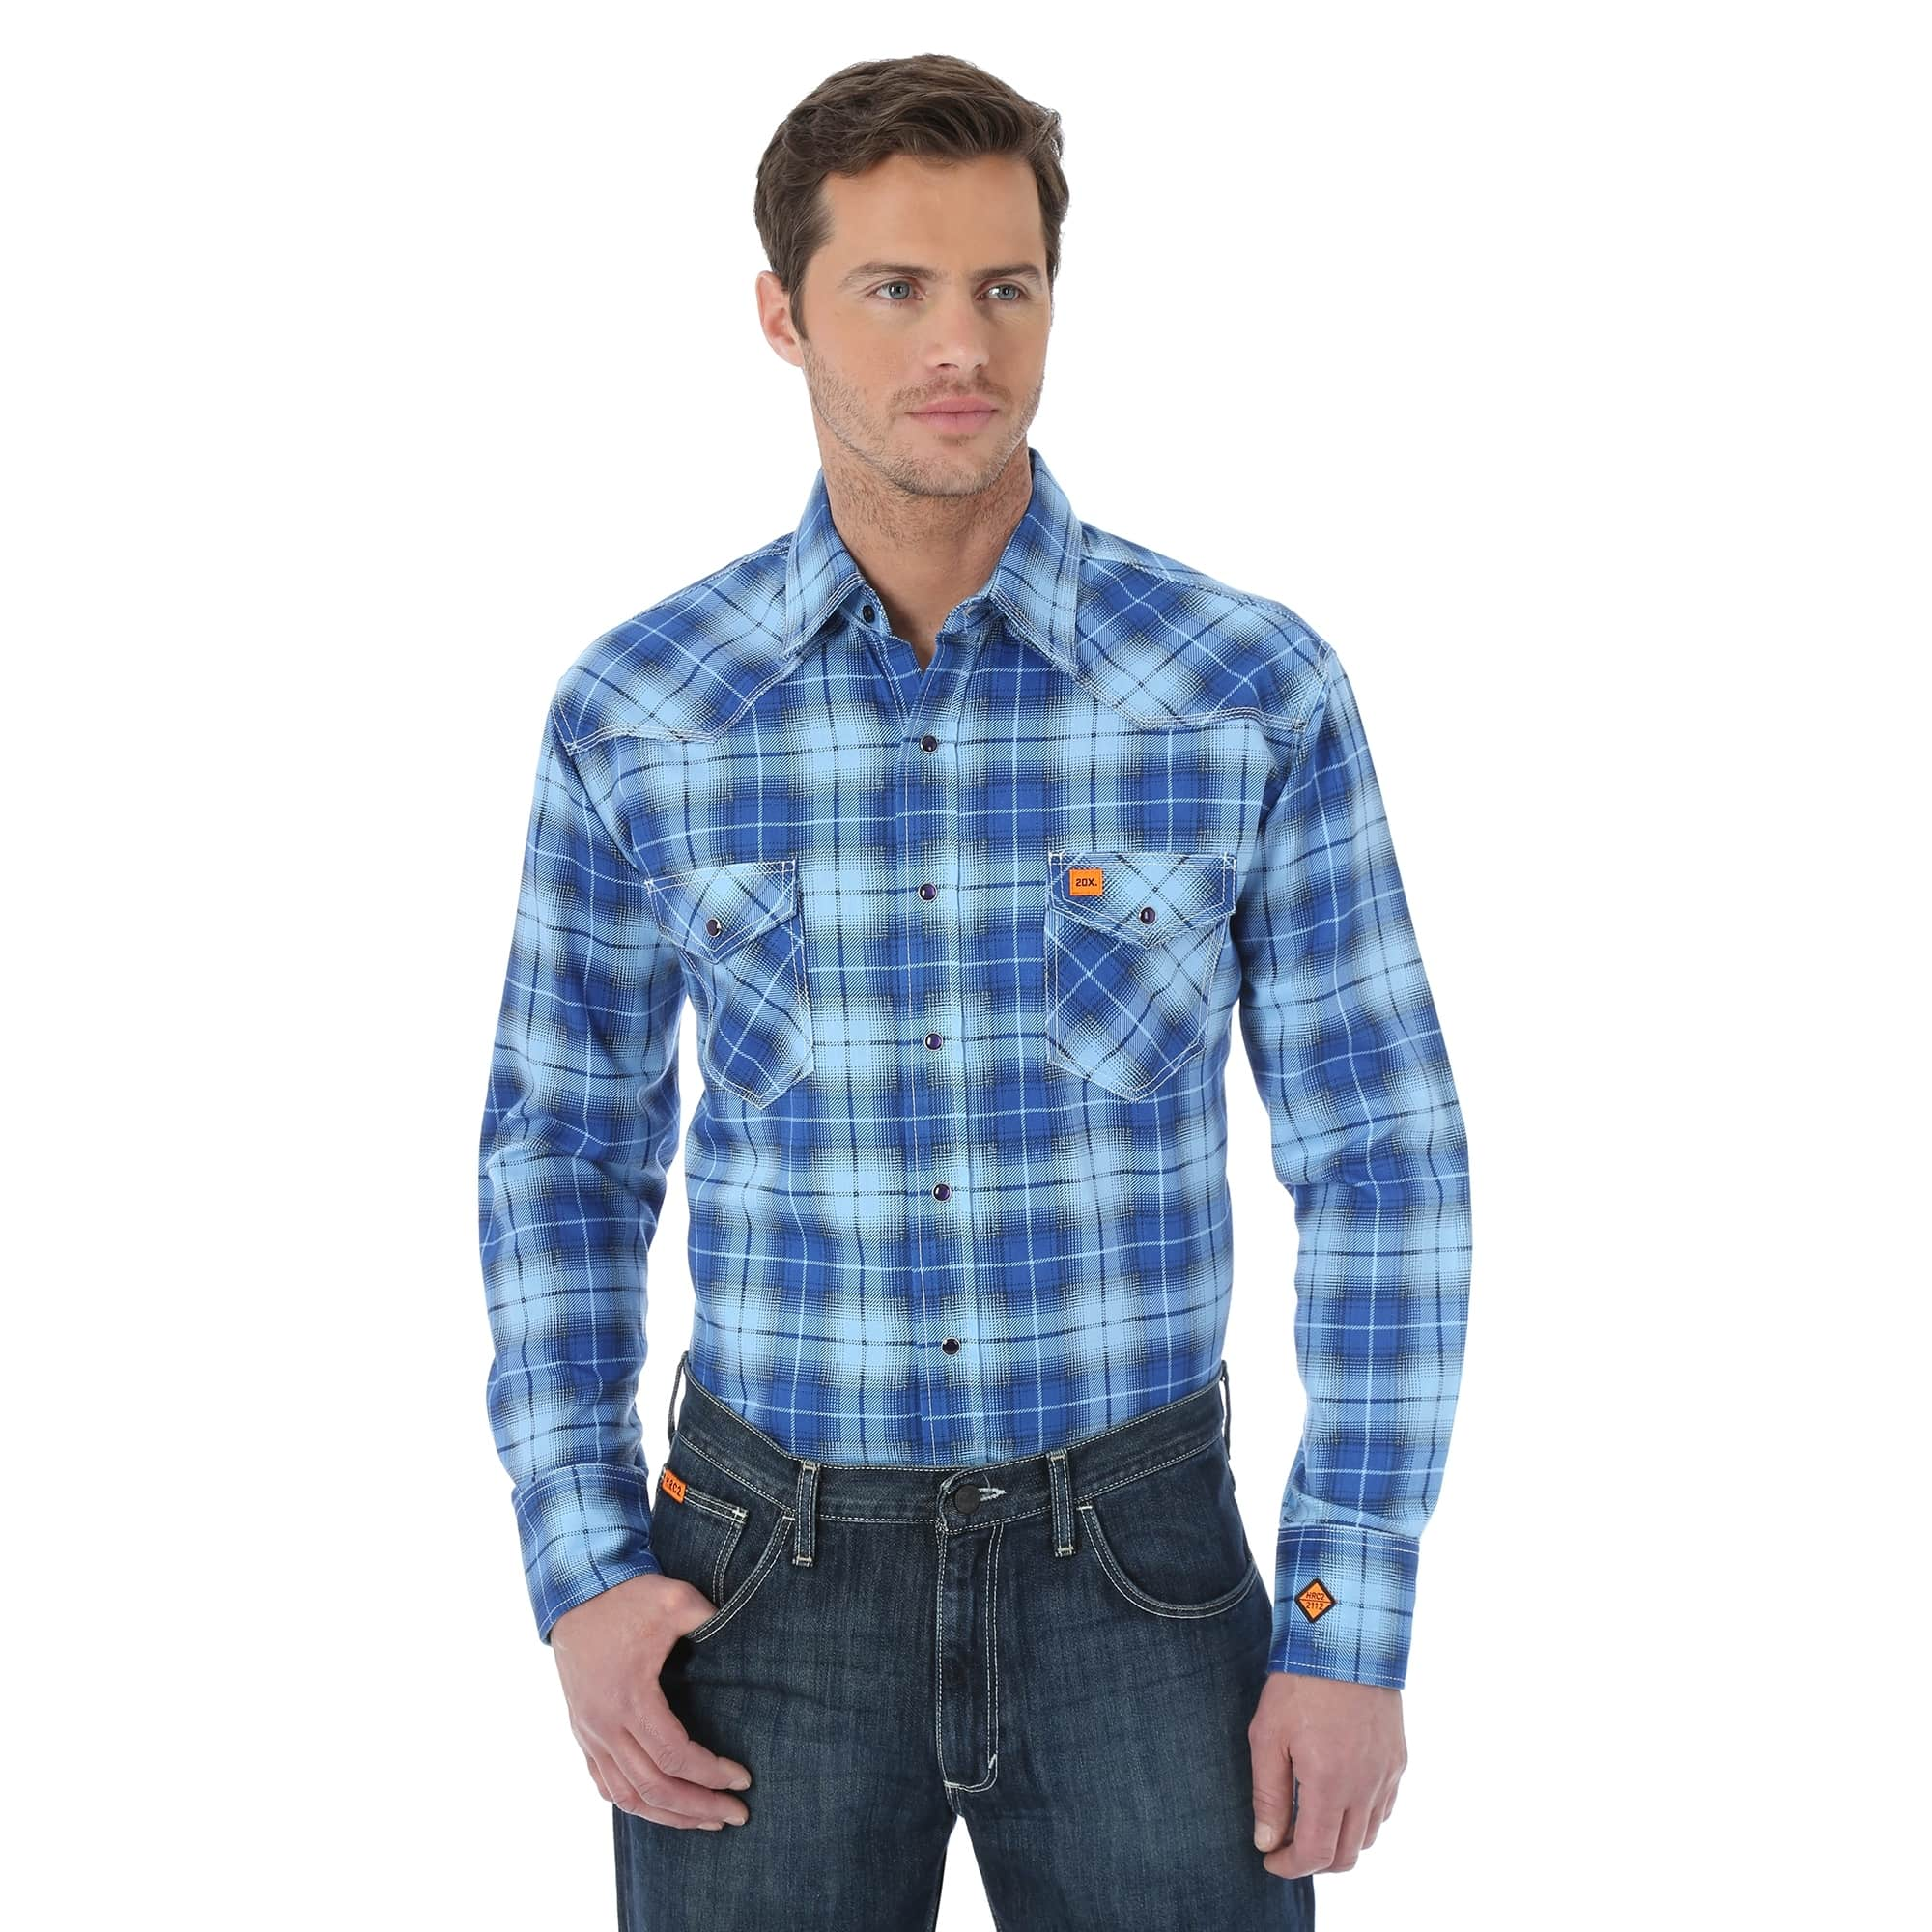 Wrangler FR Men's Light Weight Plaid Work Shirt frc clothing,fr clothing,fr shirt,fr,frc,wrangler fr shirt, wrangler fr plaid shirt,wrangler frc shirt,wrangler frc clothing,wrangler work shirt,wrangler fr work shirt,blue fr shirt,teal fr shirt,green fr shirt,orange fr shirt,blue frc shirt,teal frc shirt,orange frc shirt,green frc shirt,teal plaid fr shirt,orange plaid fr shirt,blue plaid fr shirt,red plaid fr shirt,green plaid fr shirt,orange frc clothing,blue frc clothing,orange frc clothing,red frc clothing,teal frc clothing,wrangler frc clothing,fr134gn,fr137bl,fr135or,fr136tl,fr134gn wrangler fr shirt,fr137bl wrangler fr shirt,hrc 2,fr135or wrangler fr shirt,fr136tl wrangler fr shirt,fire retardant wrangle shirt,flame retardant wrangler shirt,fire resistant wrangler shirt,hrc 2